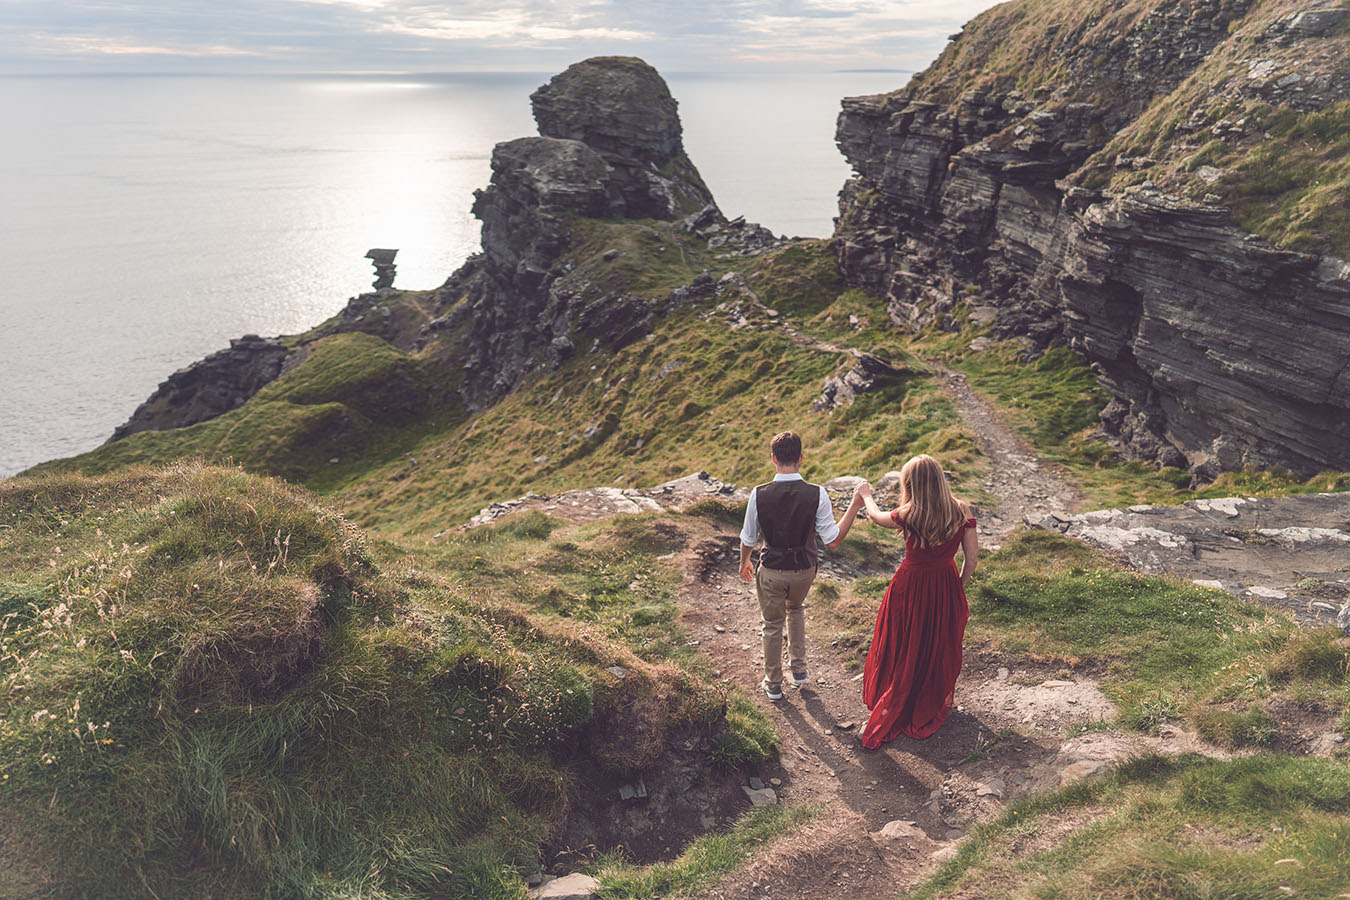 Cliffs of moher engagement photography for destination wedding couple